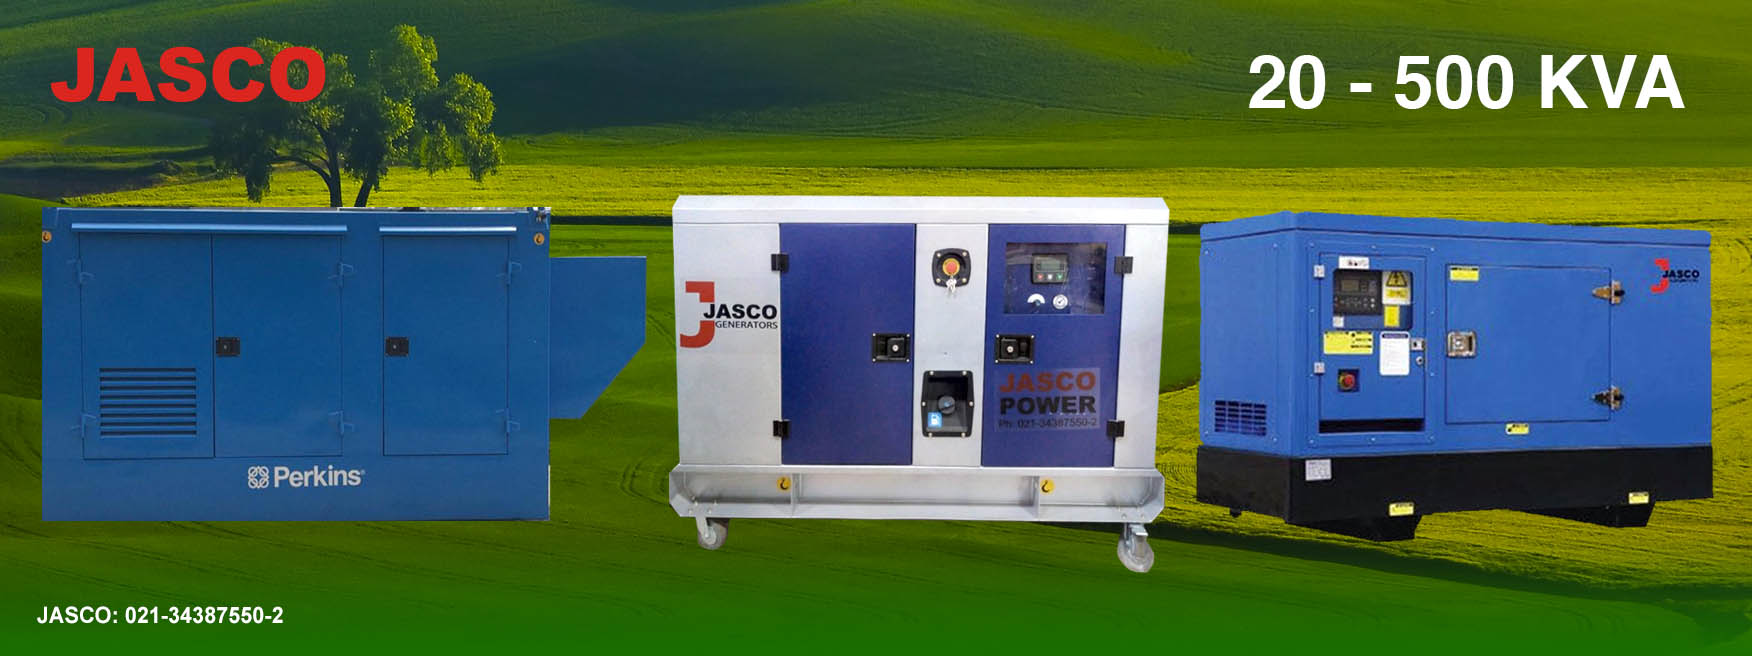 Jasco Power Products